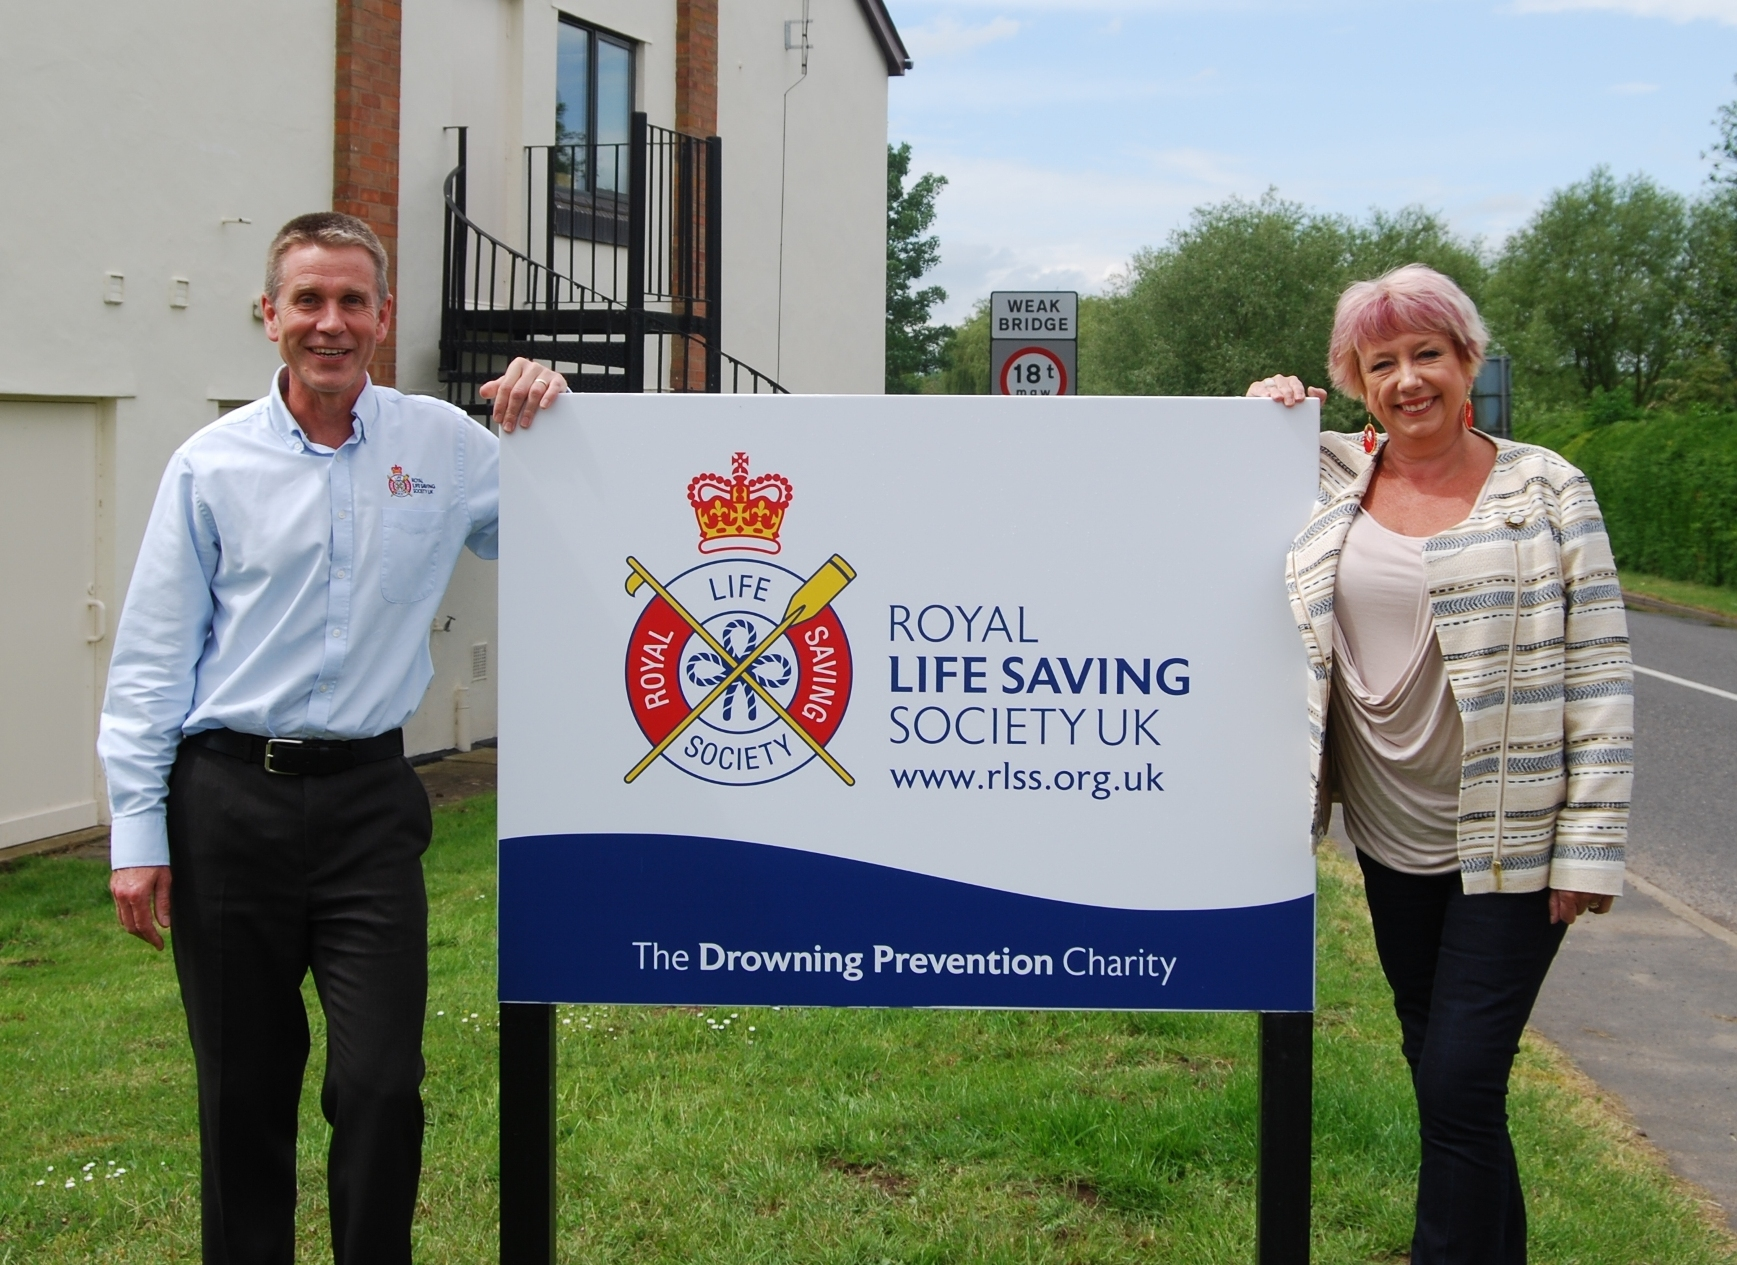 RLSS UK's Director of Lifesaving, Adrian Lole, and Redditch MP Karen Lumley during her visit to the charity's headquarters. SP